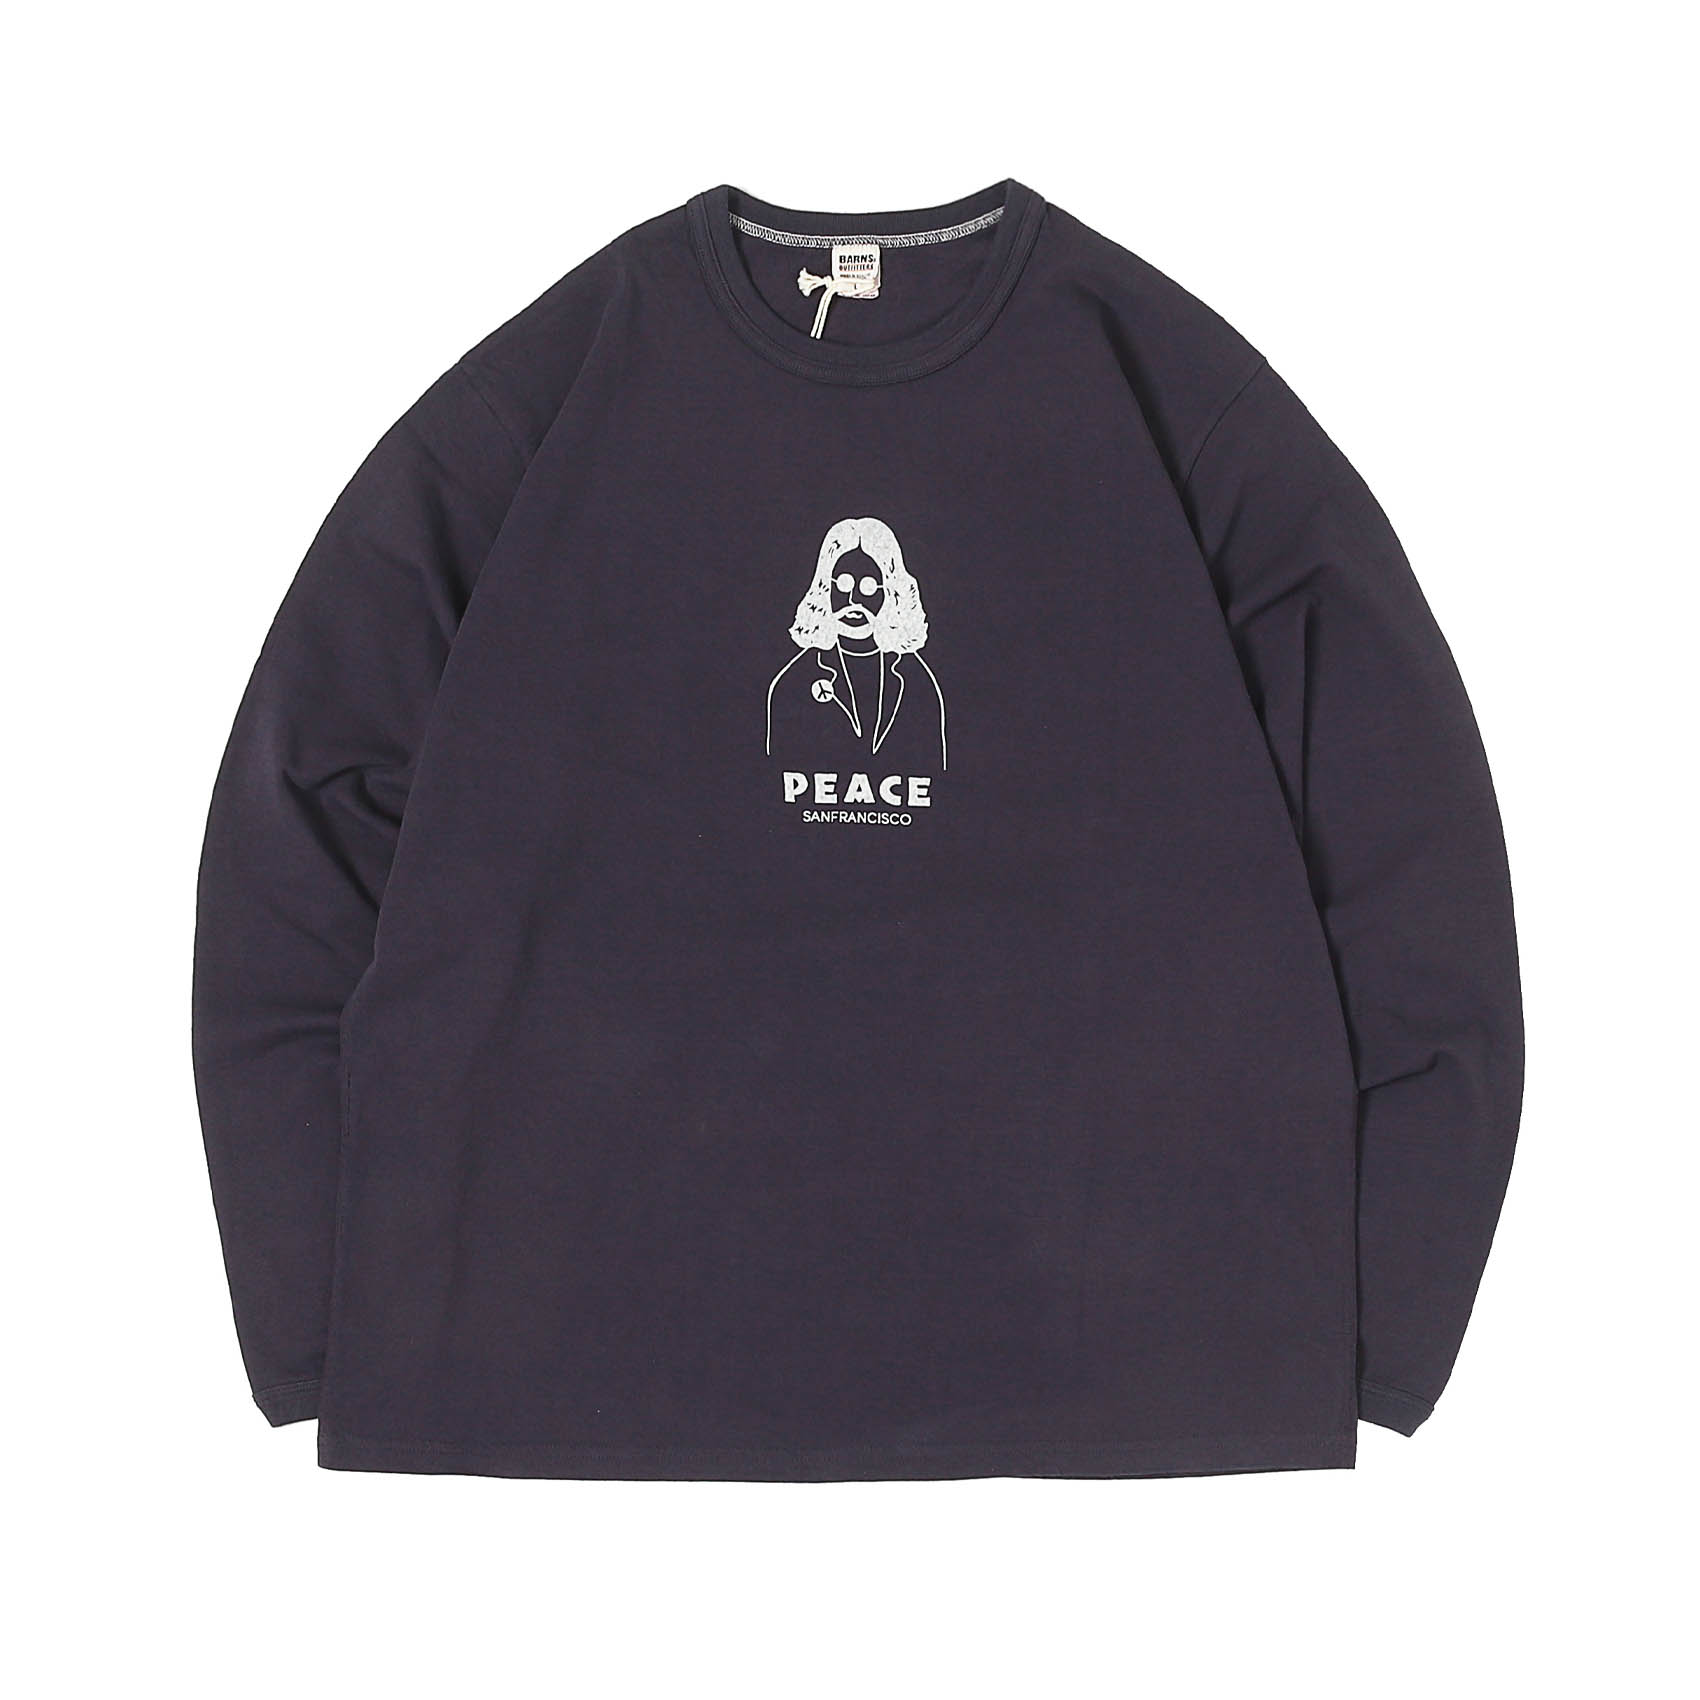 L/S PRINTED TEE - PEACE BLACK